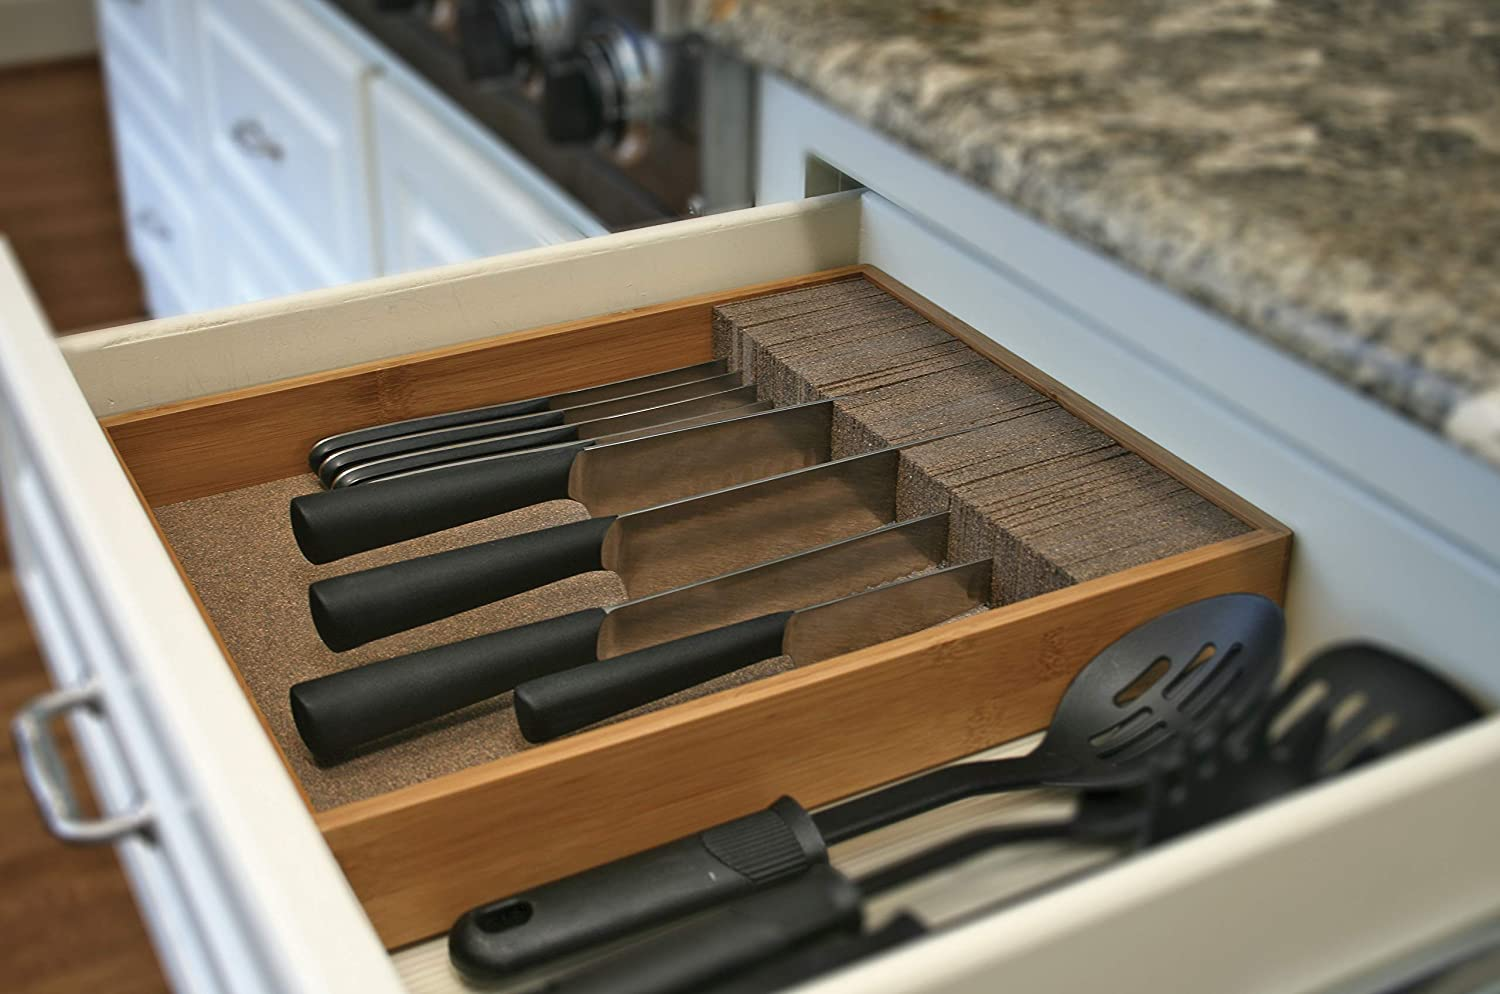 Deluxe KNIFEdock - In-drawer Kitchen Knife Storage (15 in x 13 in x 2.5 in)- Easily Identify Your Knives At A Glance. Frees Up Your Counter Space. Cork Composite Material Never Dulls Your Blades.